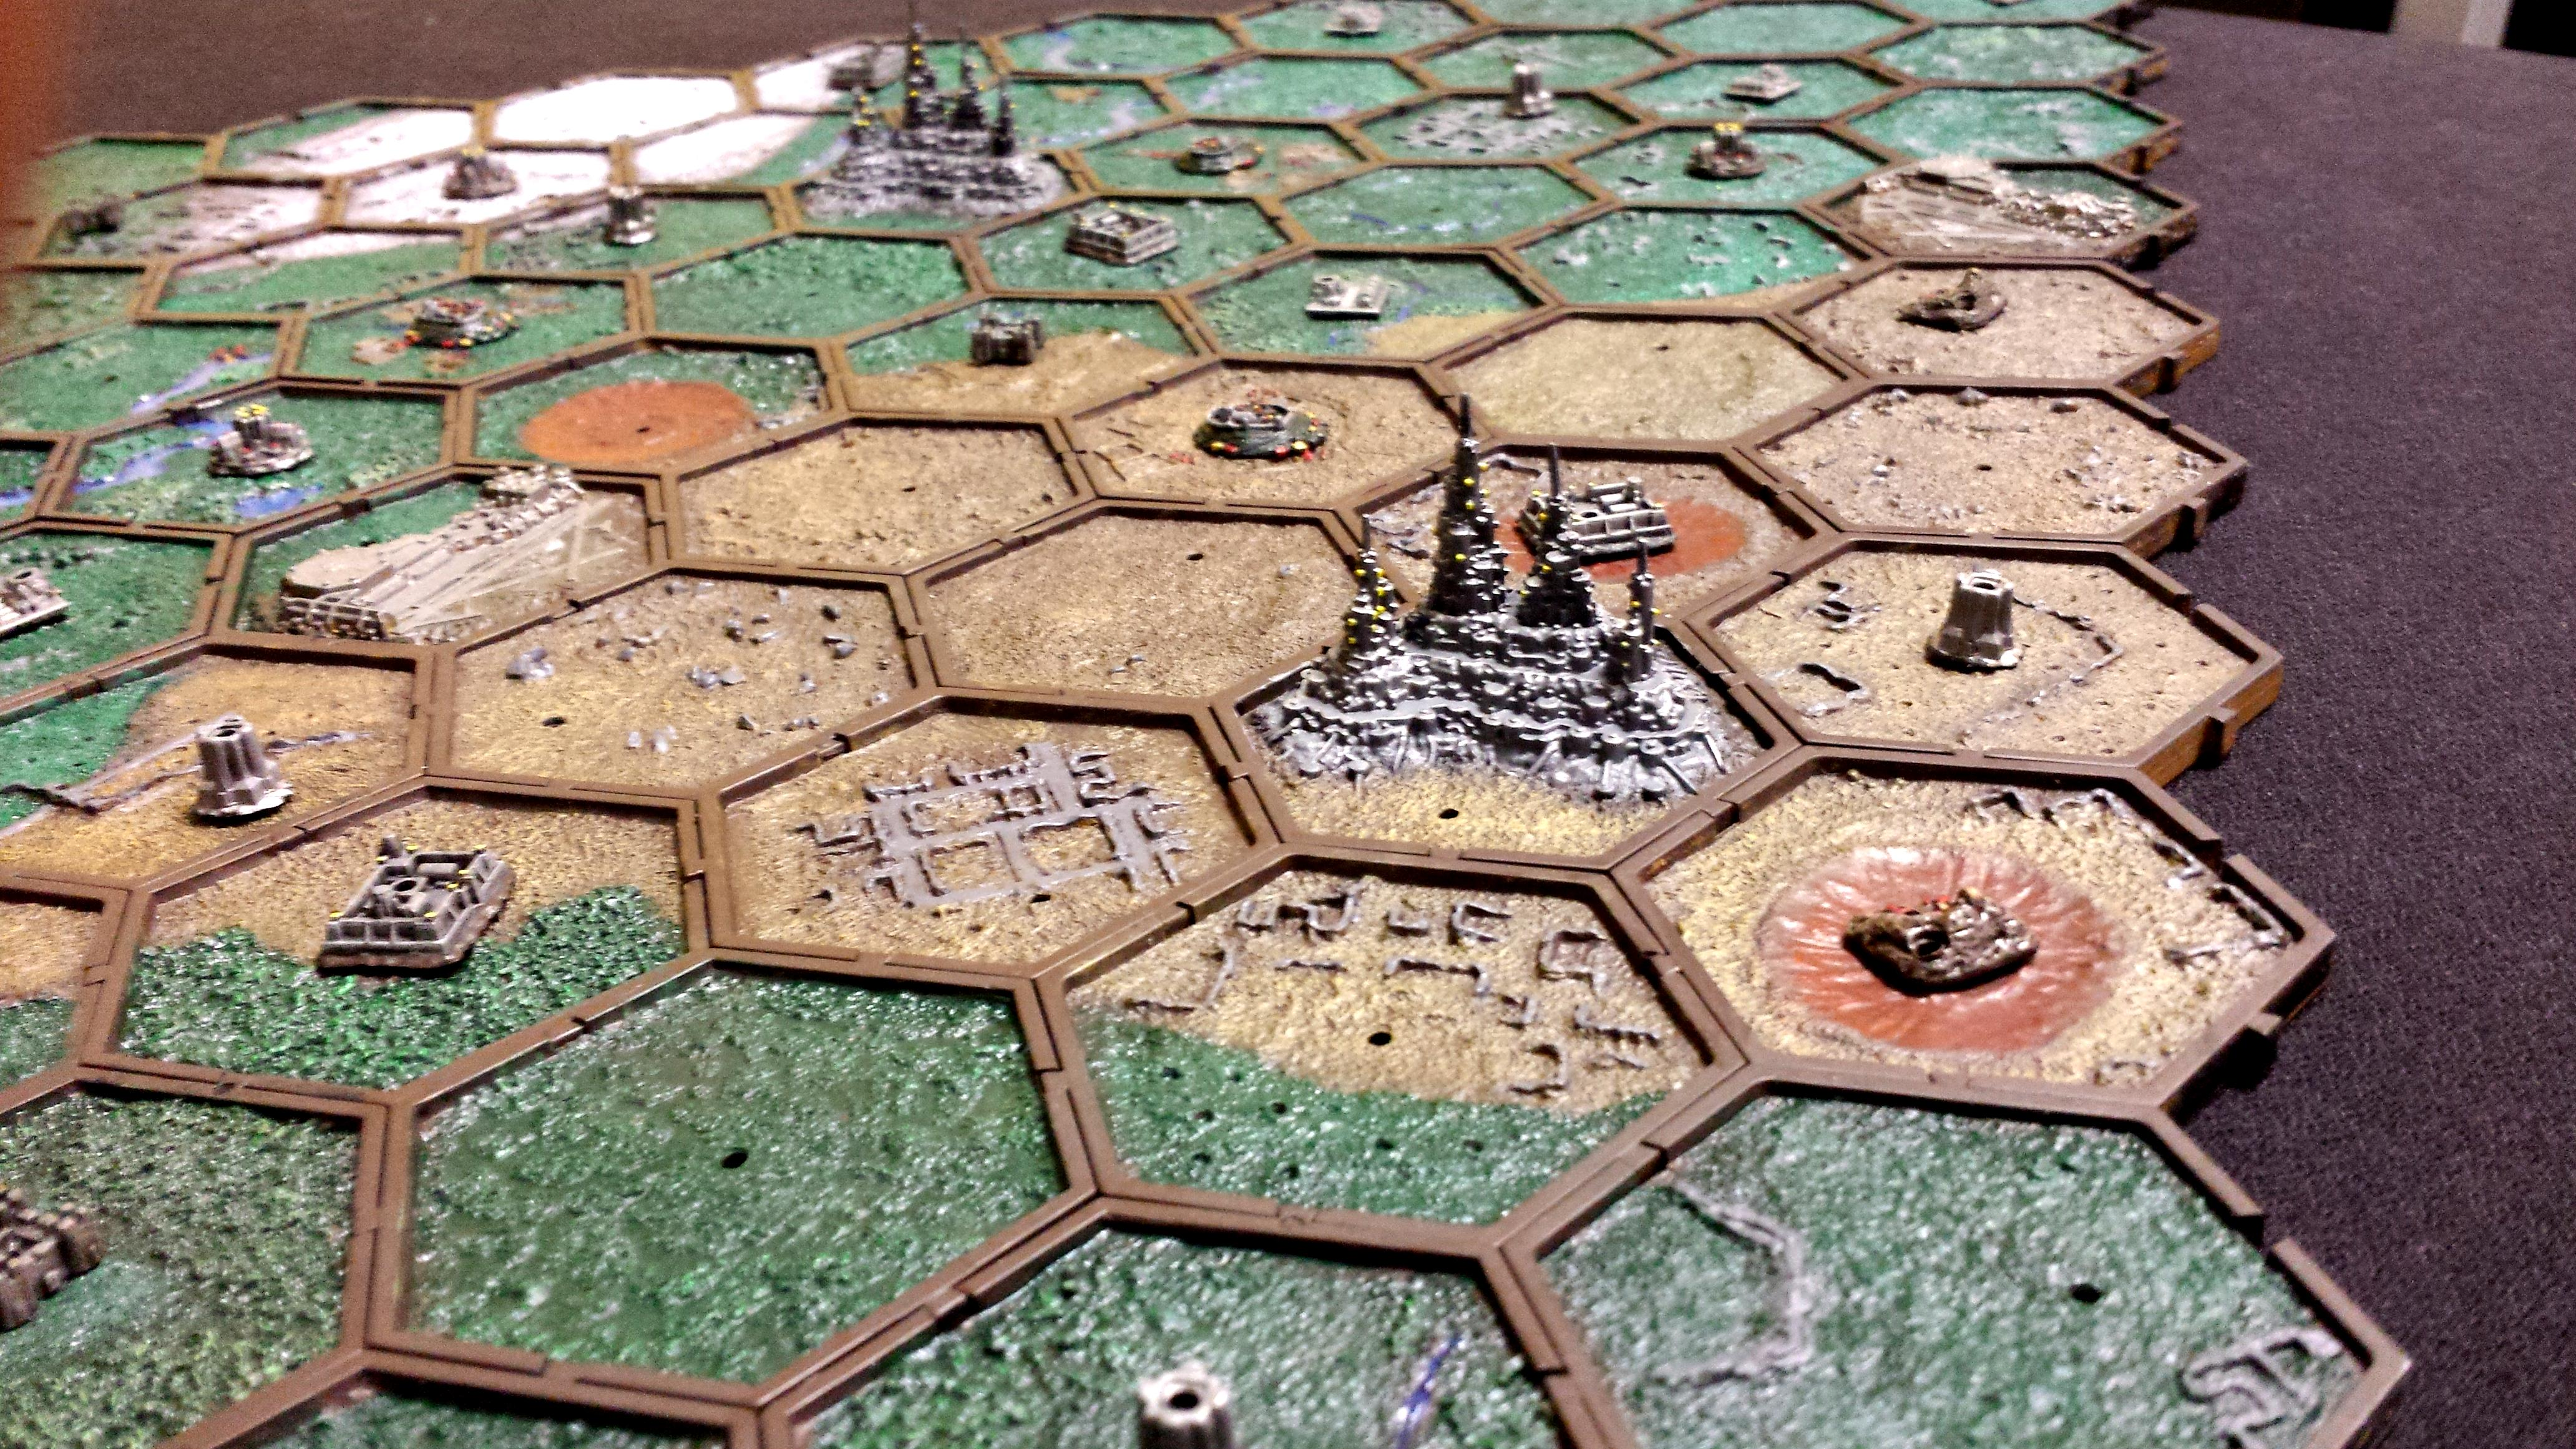 Campaign, Map, Mighty Empires, Planetary Empires, Warhammer 40,000